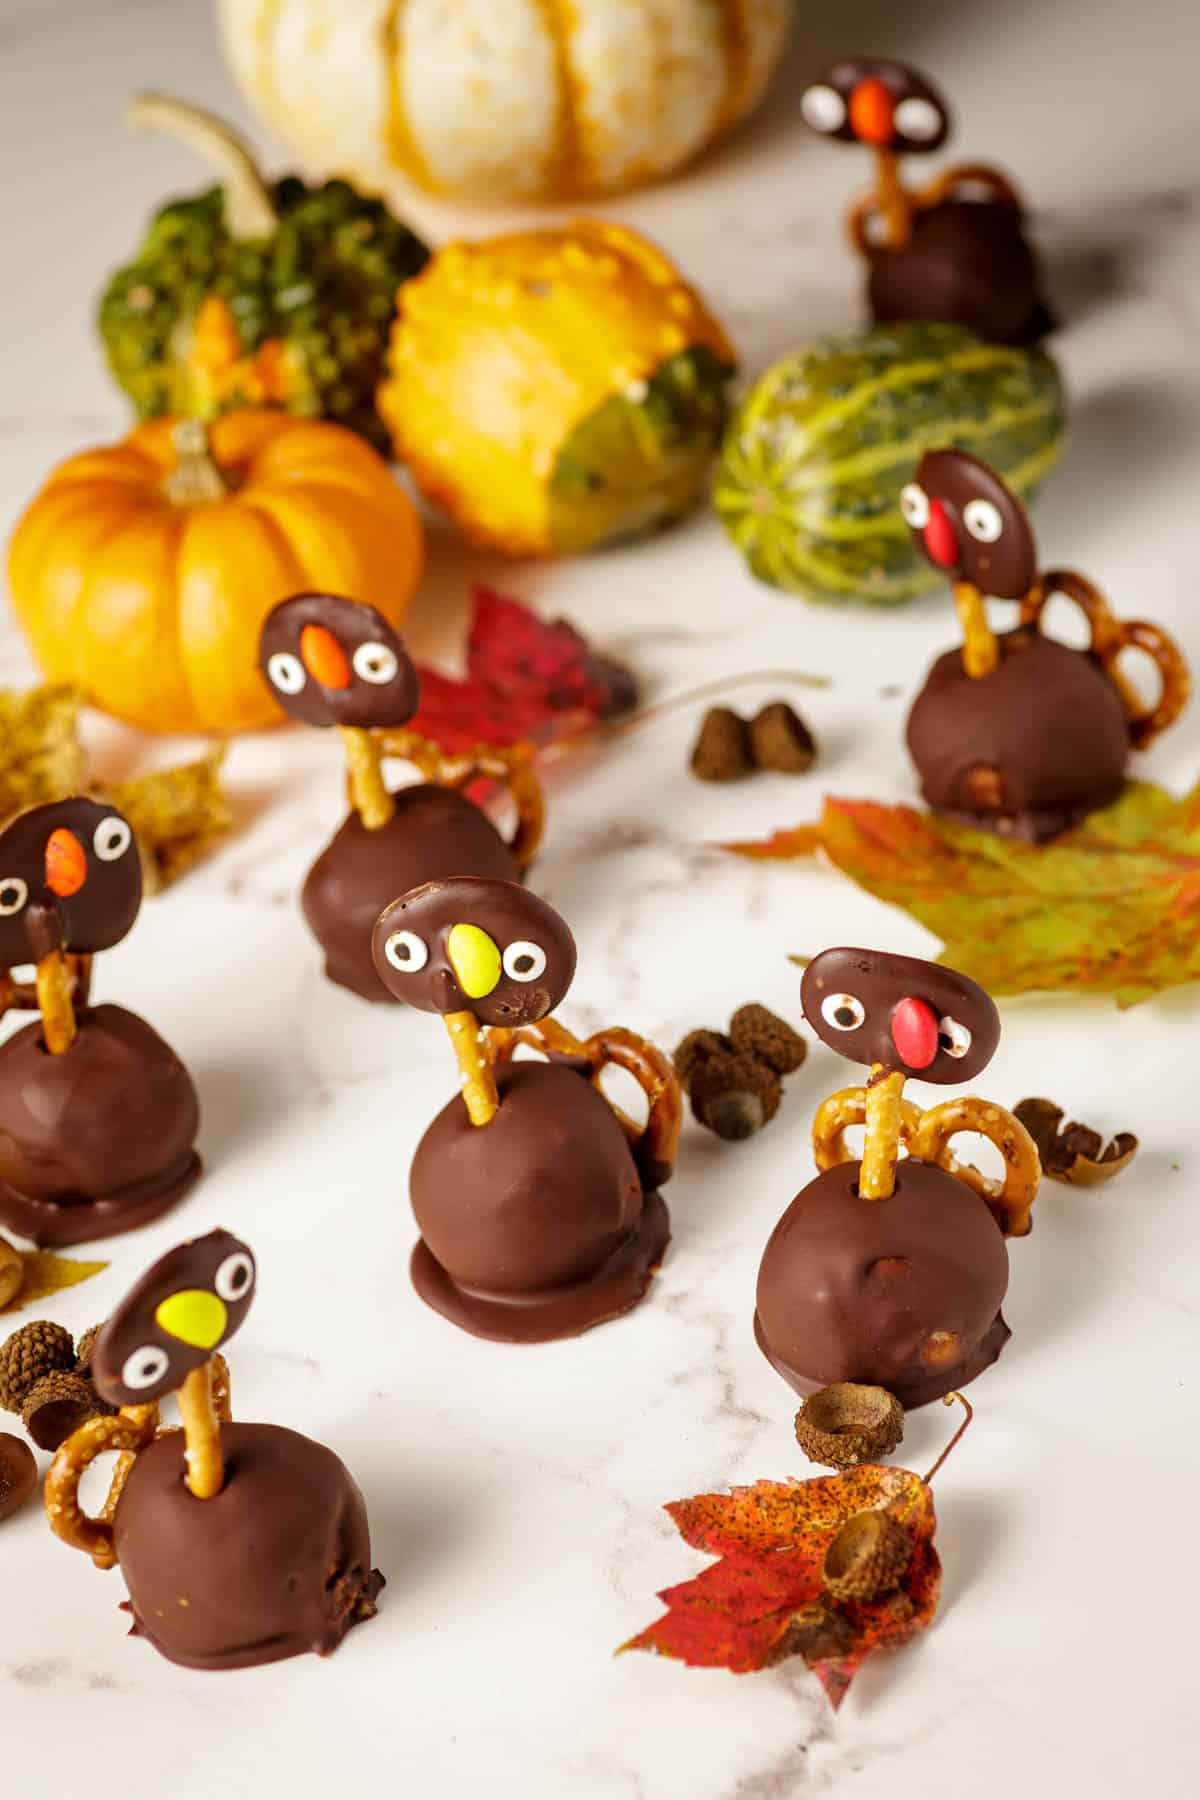 Thanksgiving Oreo truffles with fall decorations